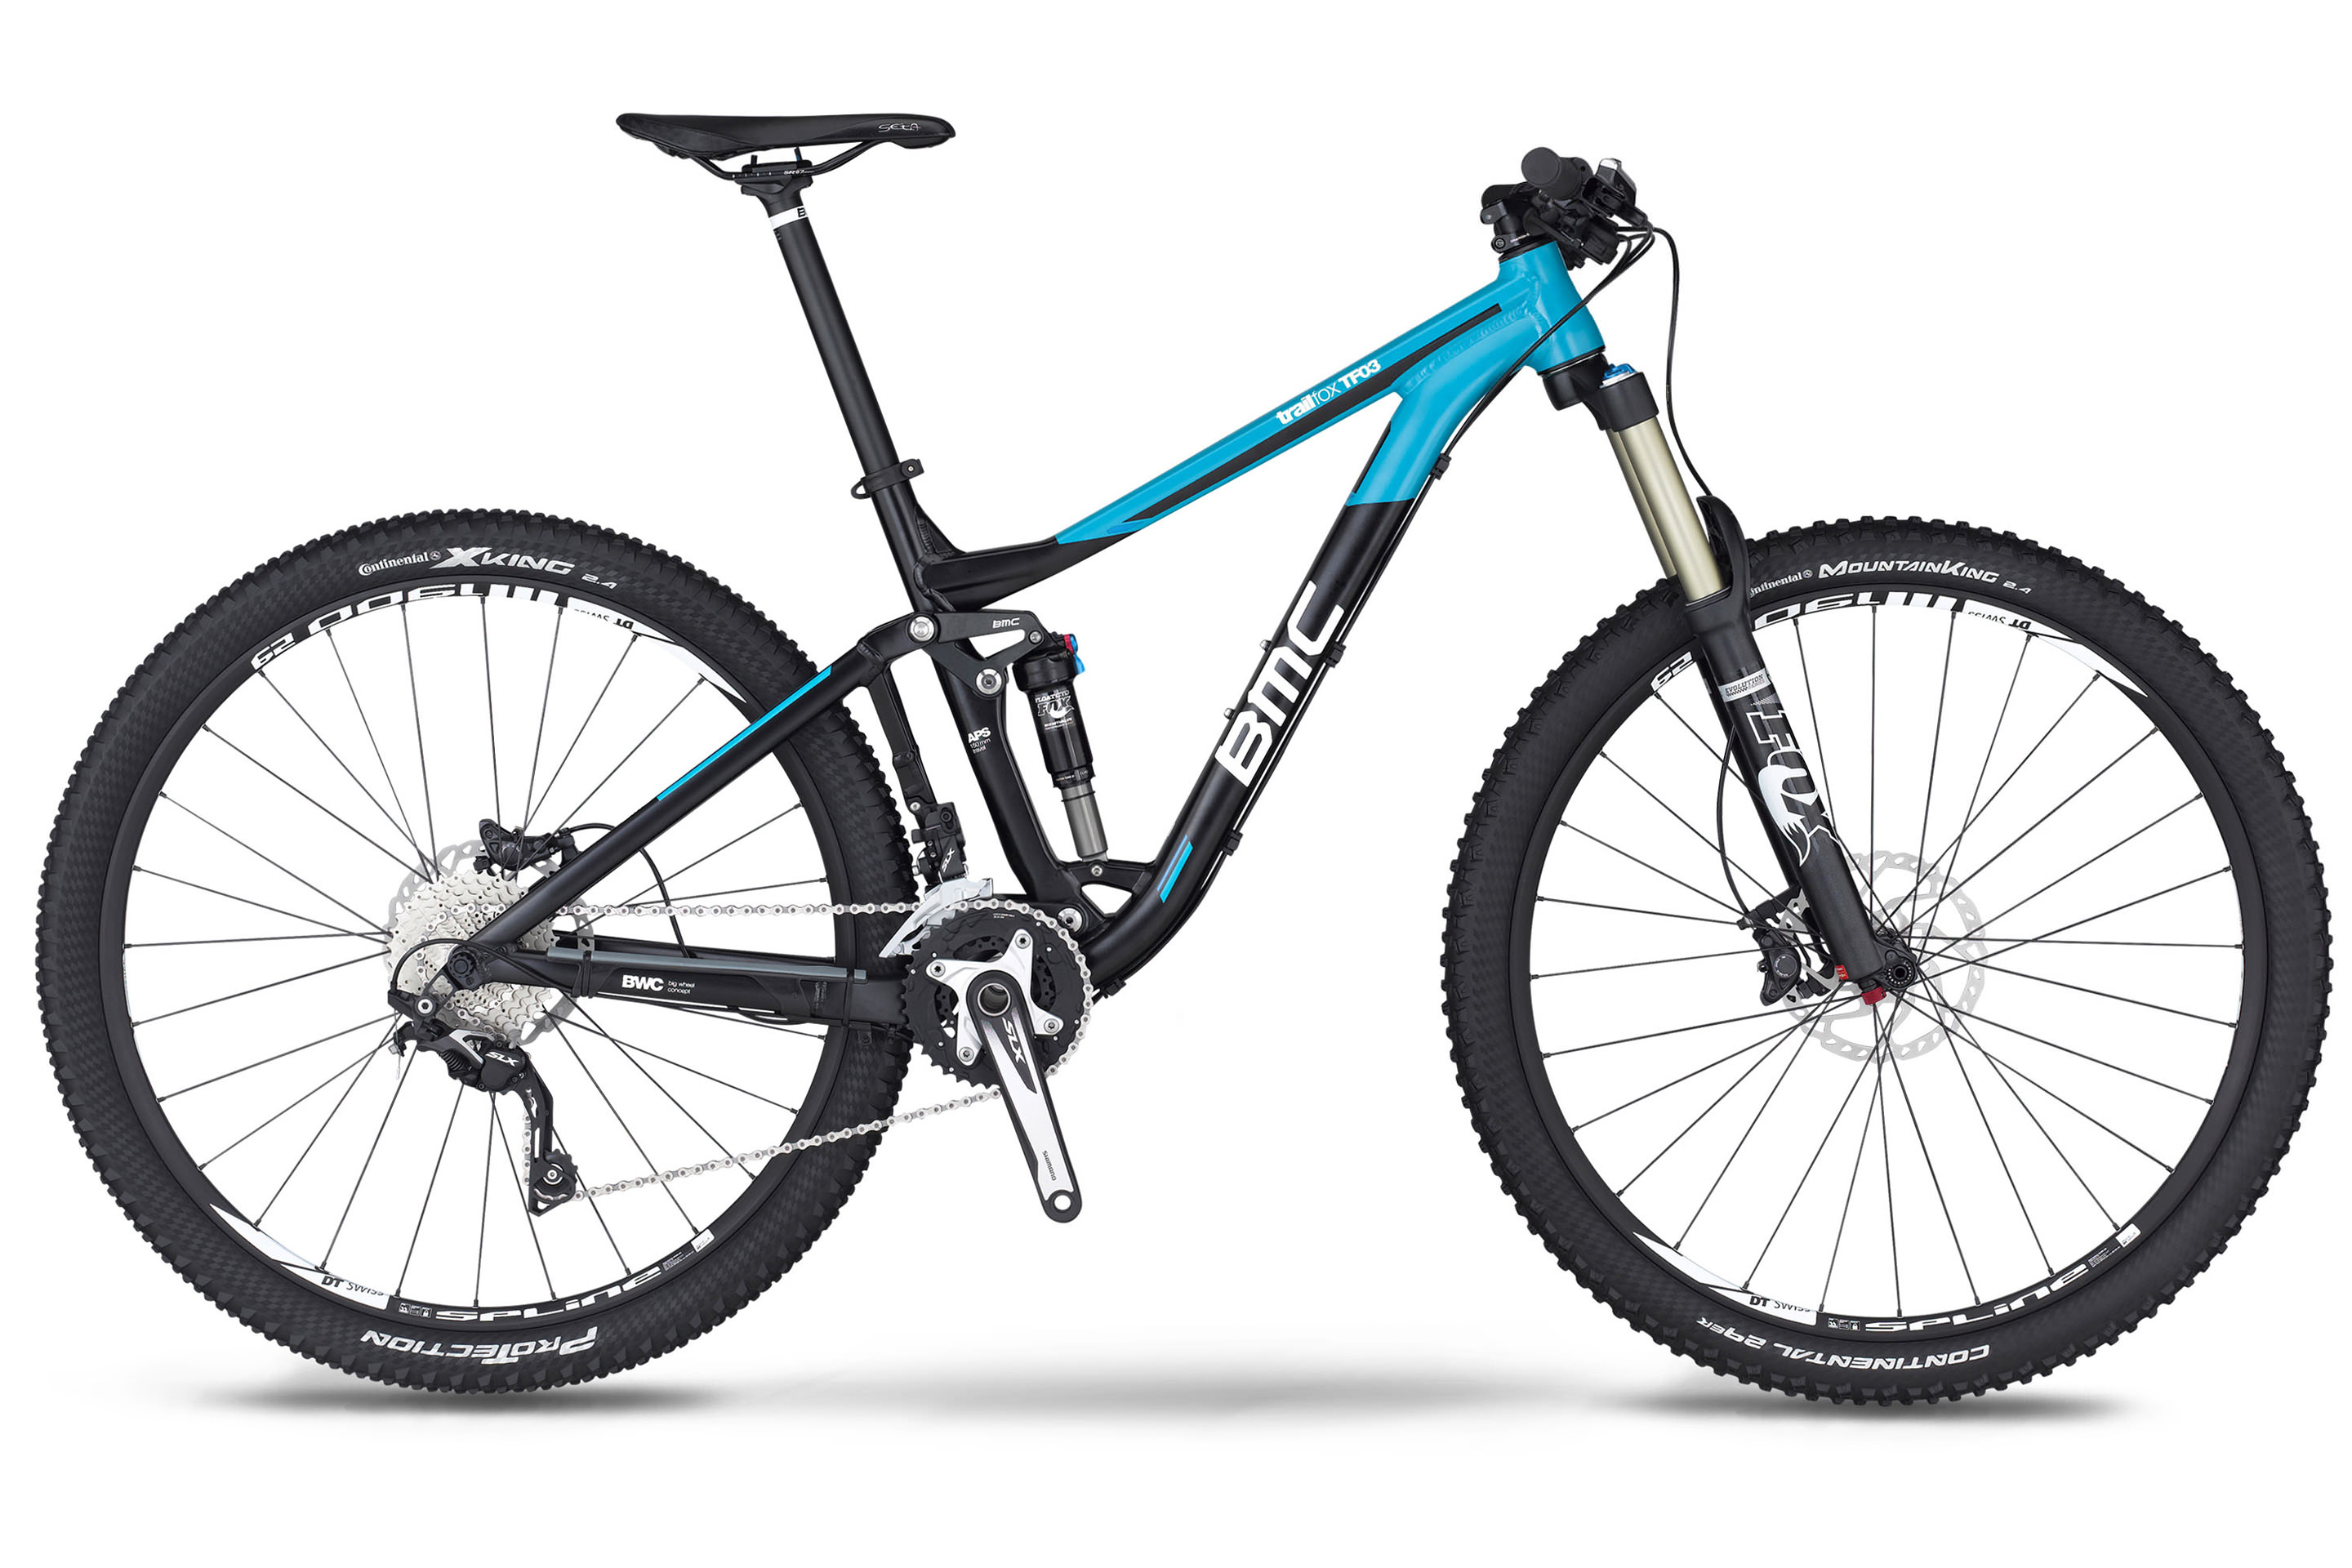 2014 TrailFox TF03 29 SLX | Culture Vélo